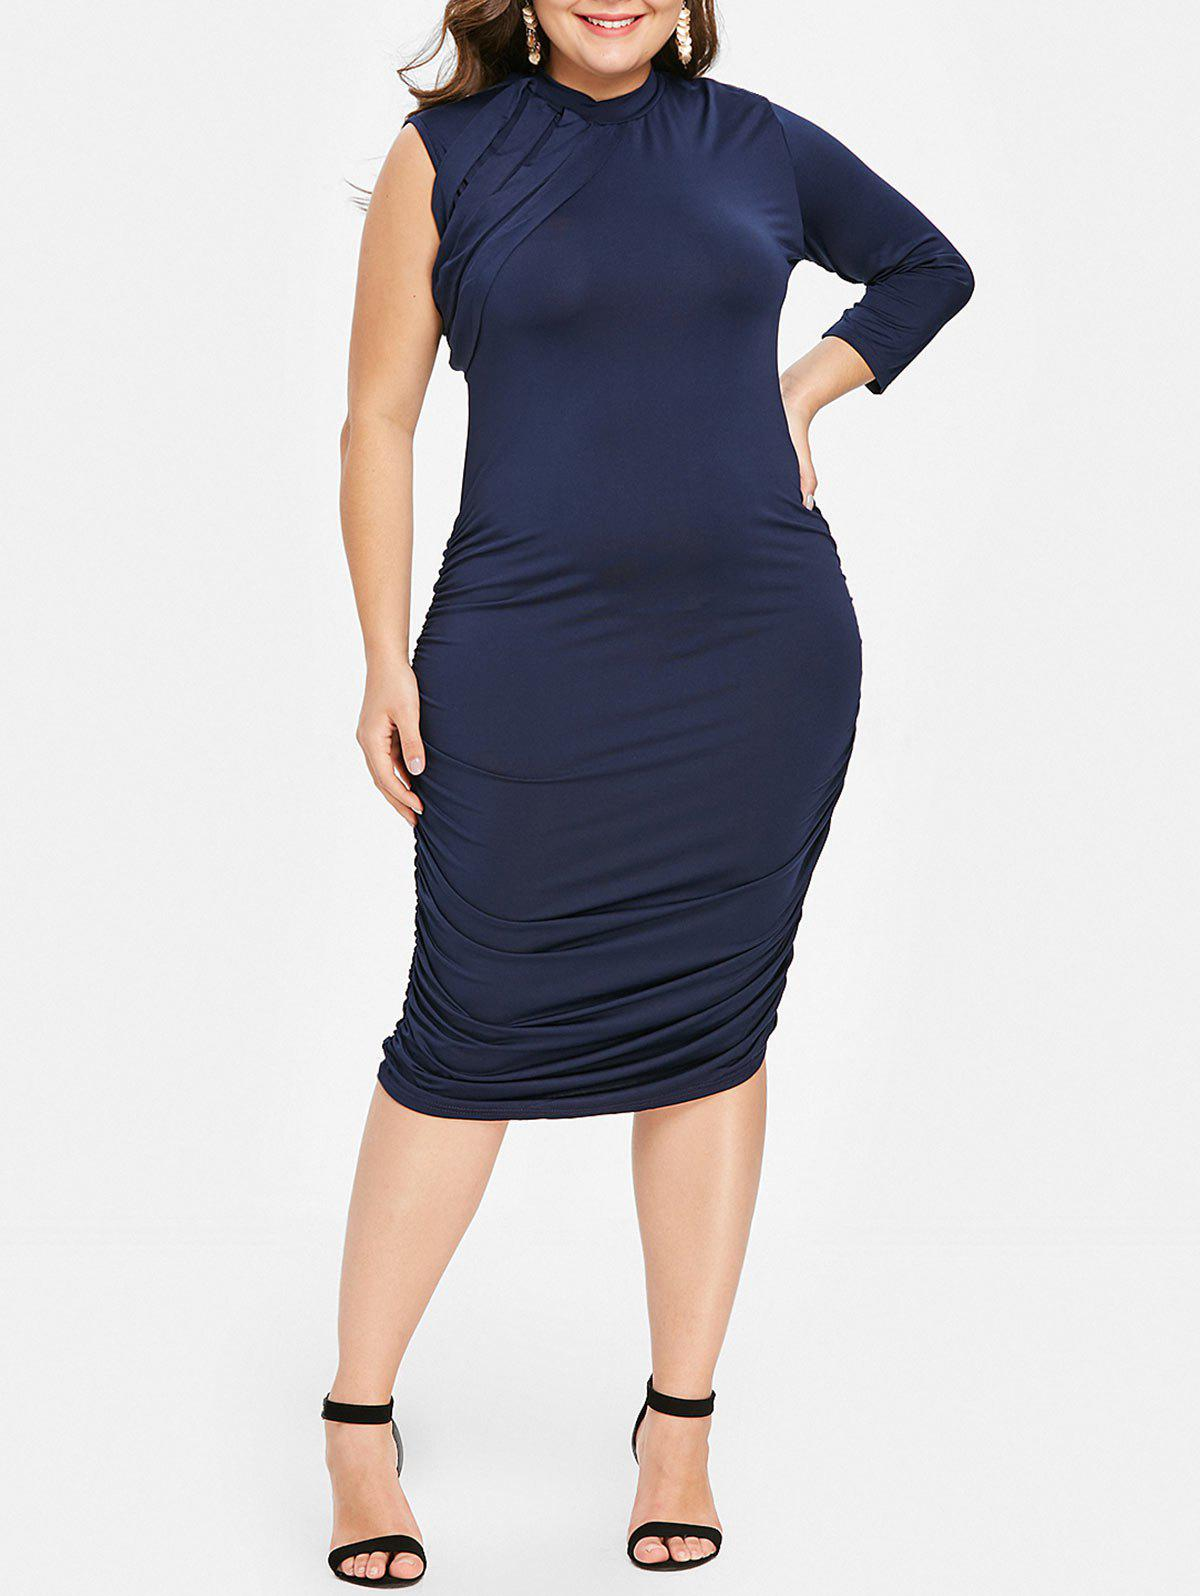 Buy Stylish Stand-Up Collar 3/4 Sleeve Ruched Plus Size Dress For Women